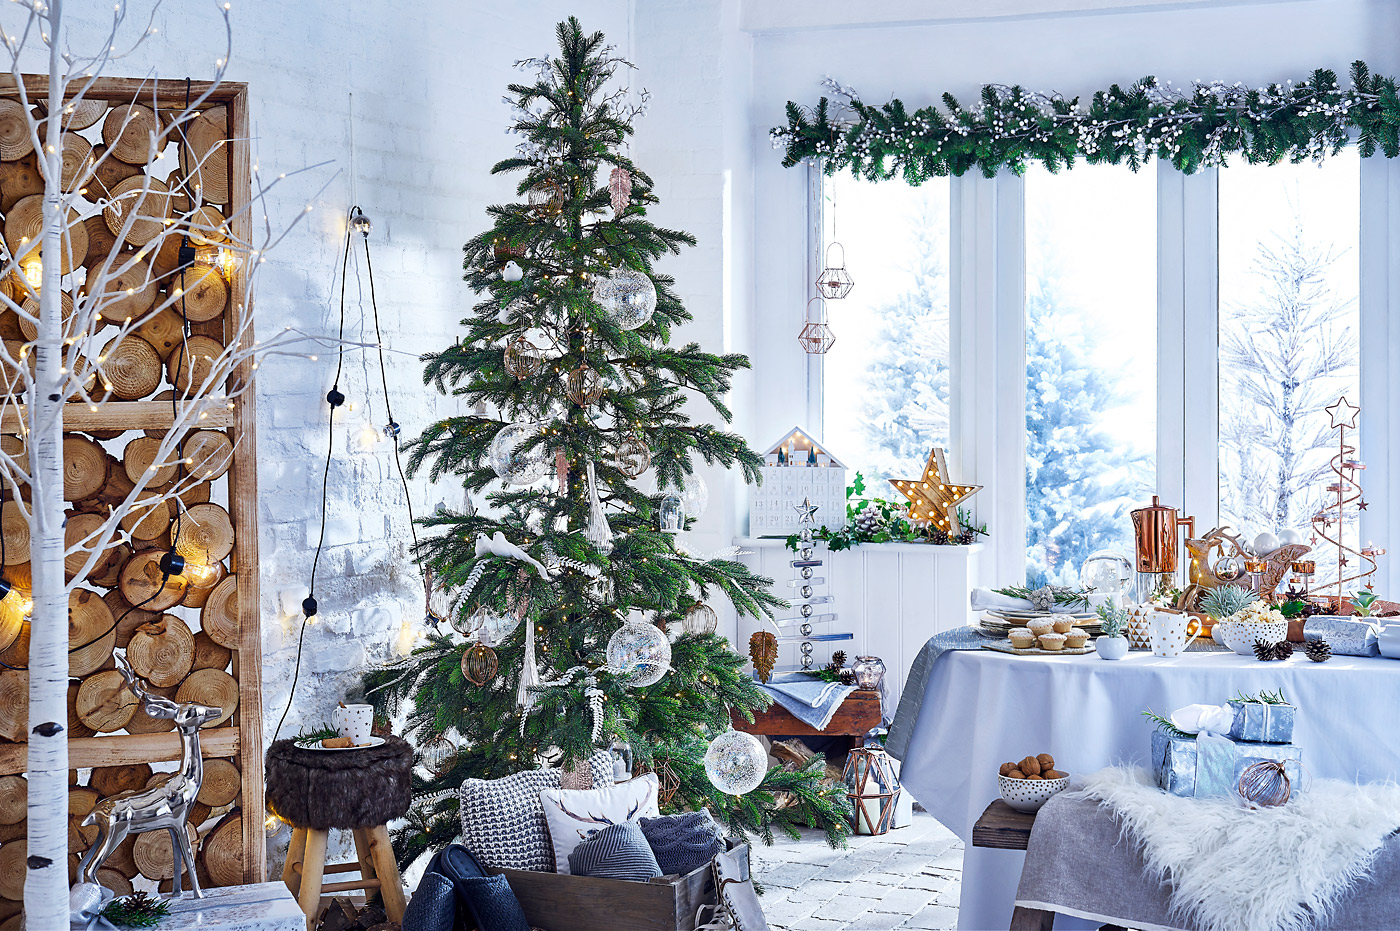 Nordic Christmas scene for Notcutts